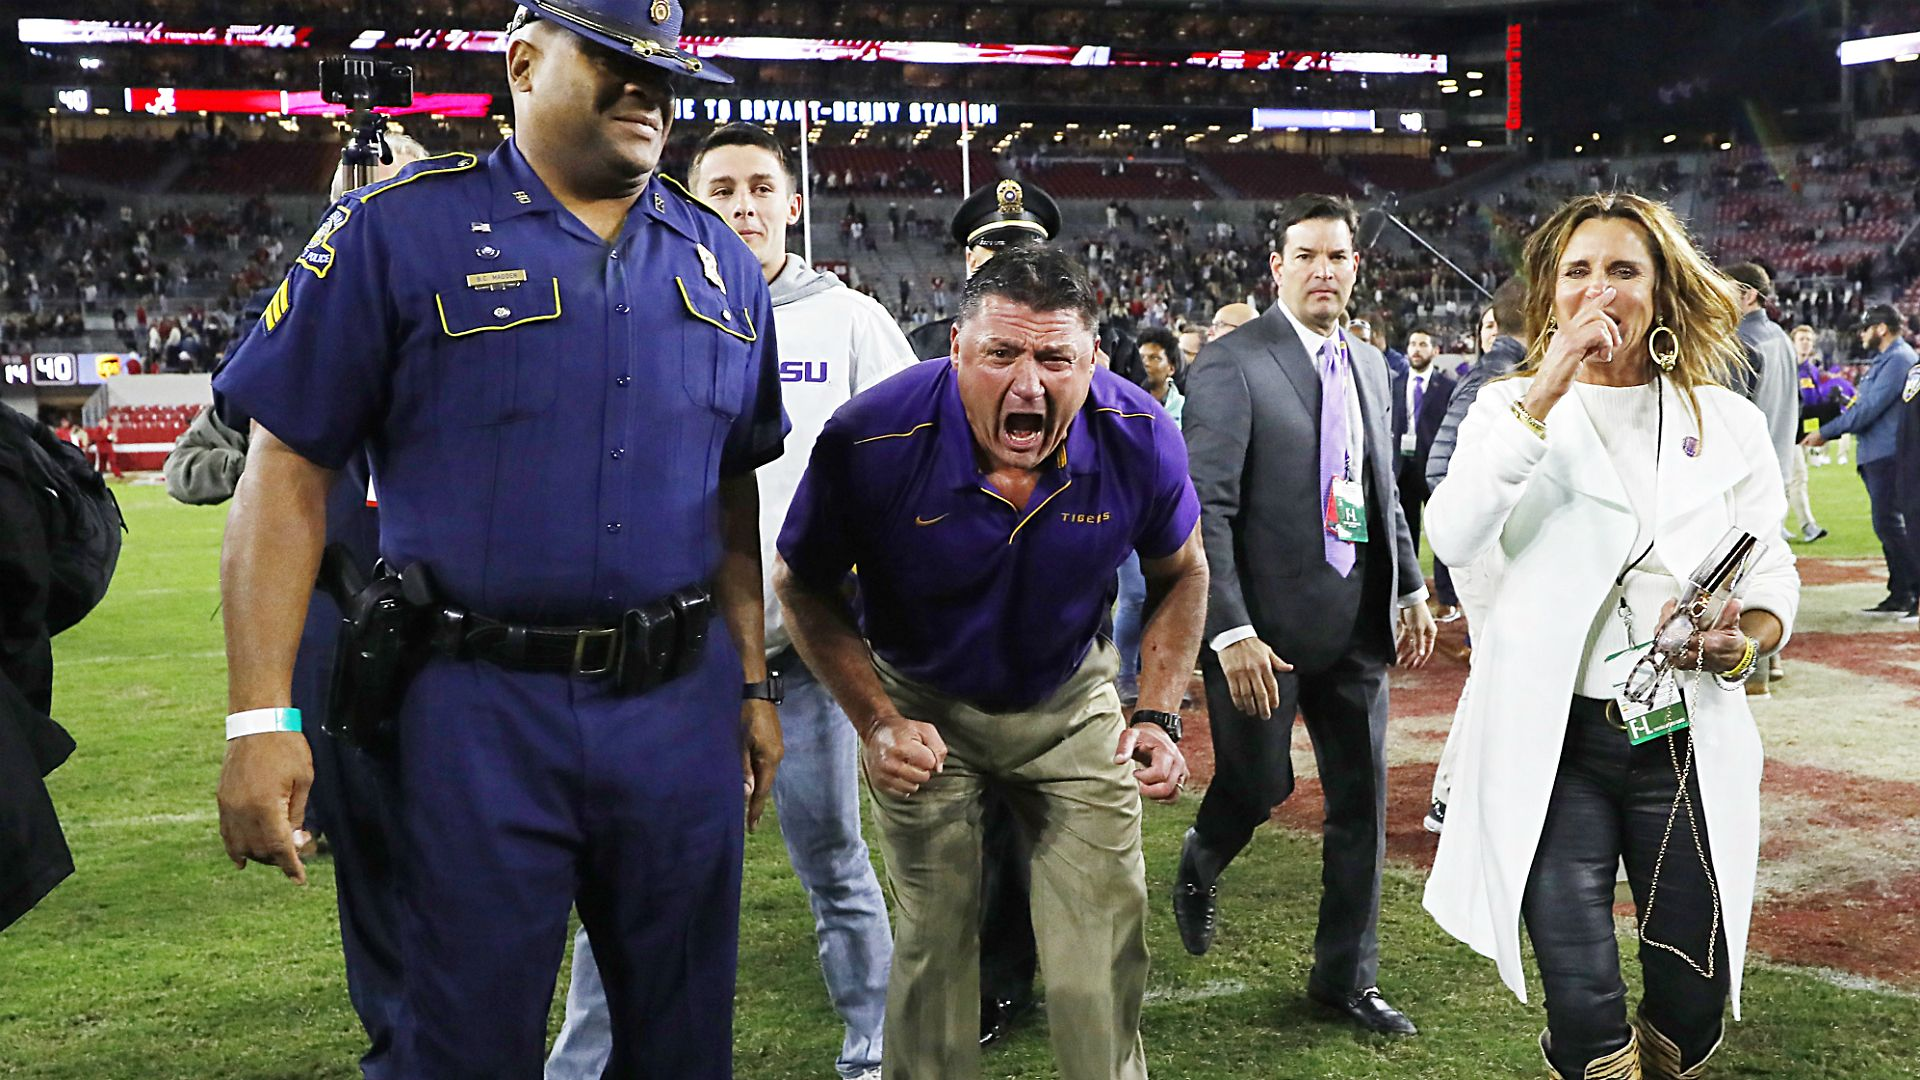 Lsu Coach Ed Orgeron Delivered A Profane Postgame Speech To His Team After The Tigers Won In Bryant Denny Stadium Lsu Football Lsu Tigers Football Lsu